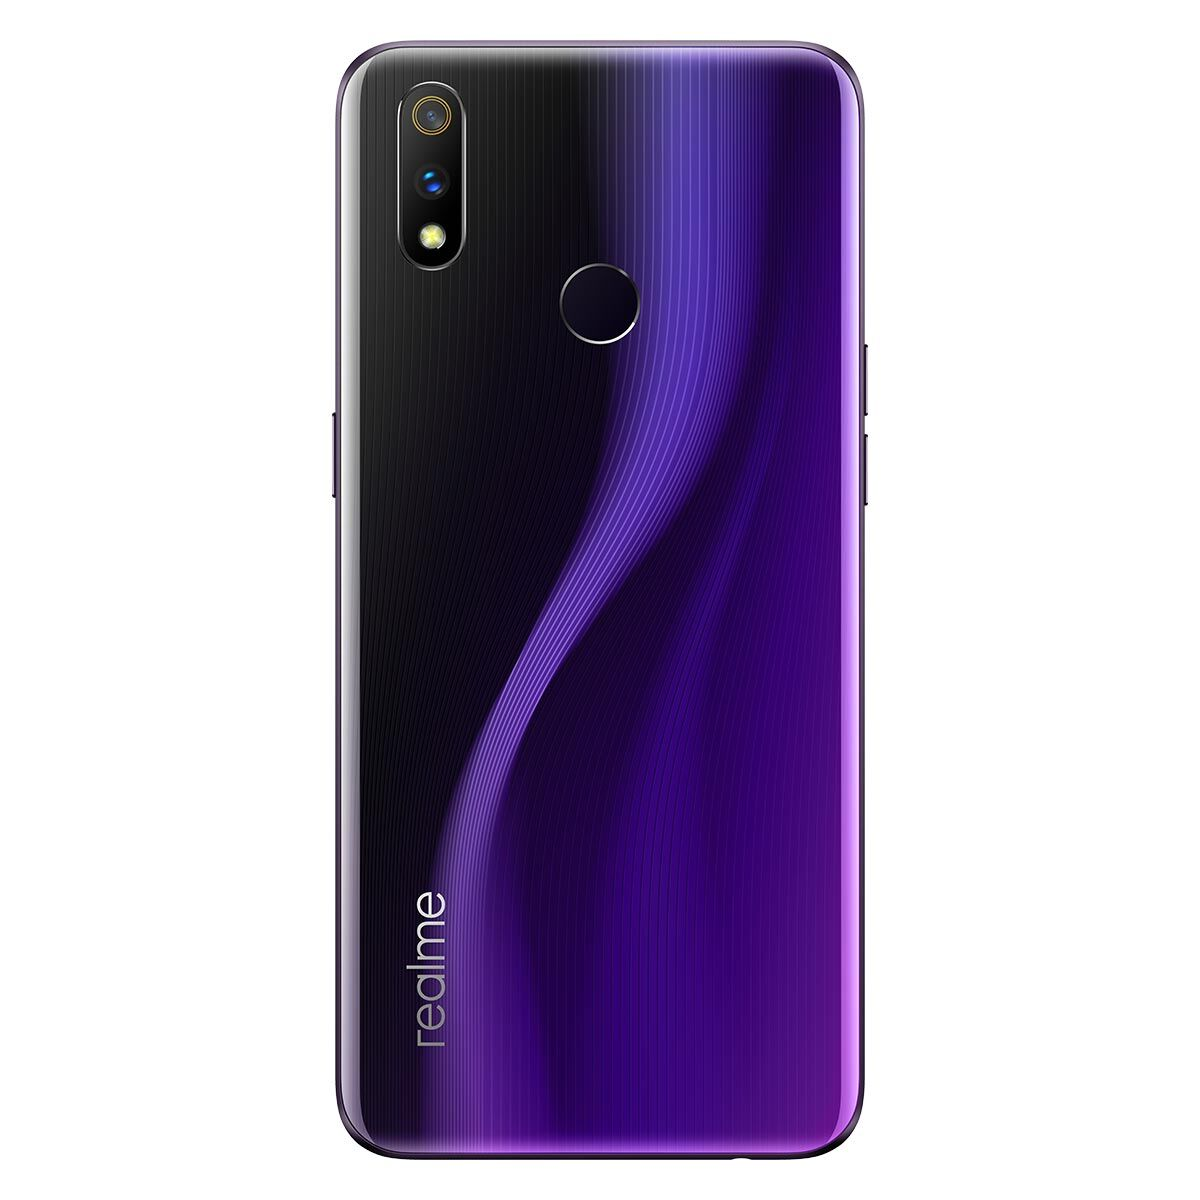 Realme 3 Pro launched in India as the successor to Realme